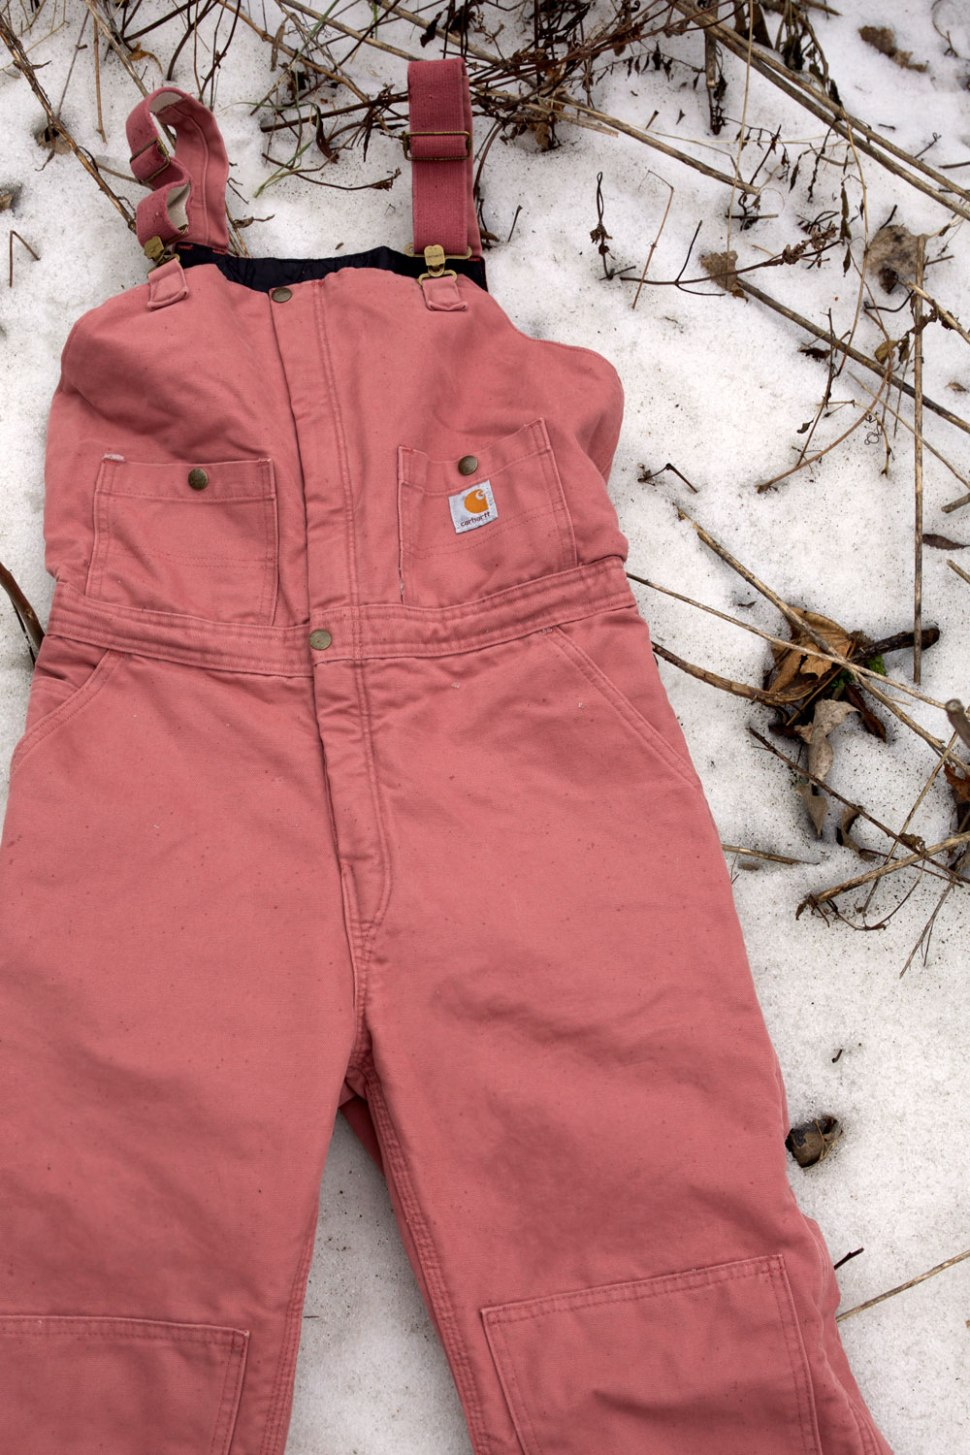 Winter Wishlist / Crafted in Carhartt